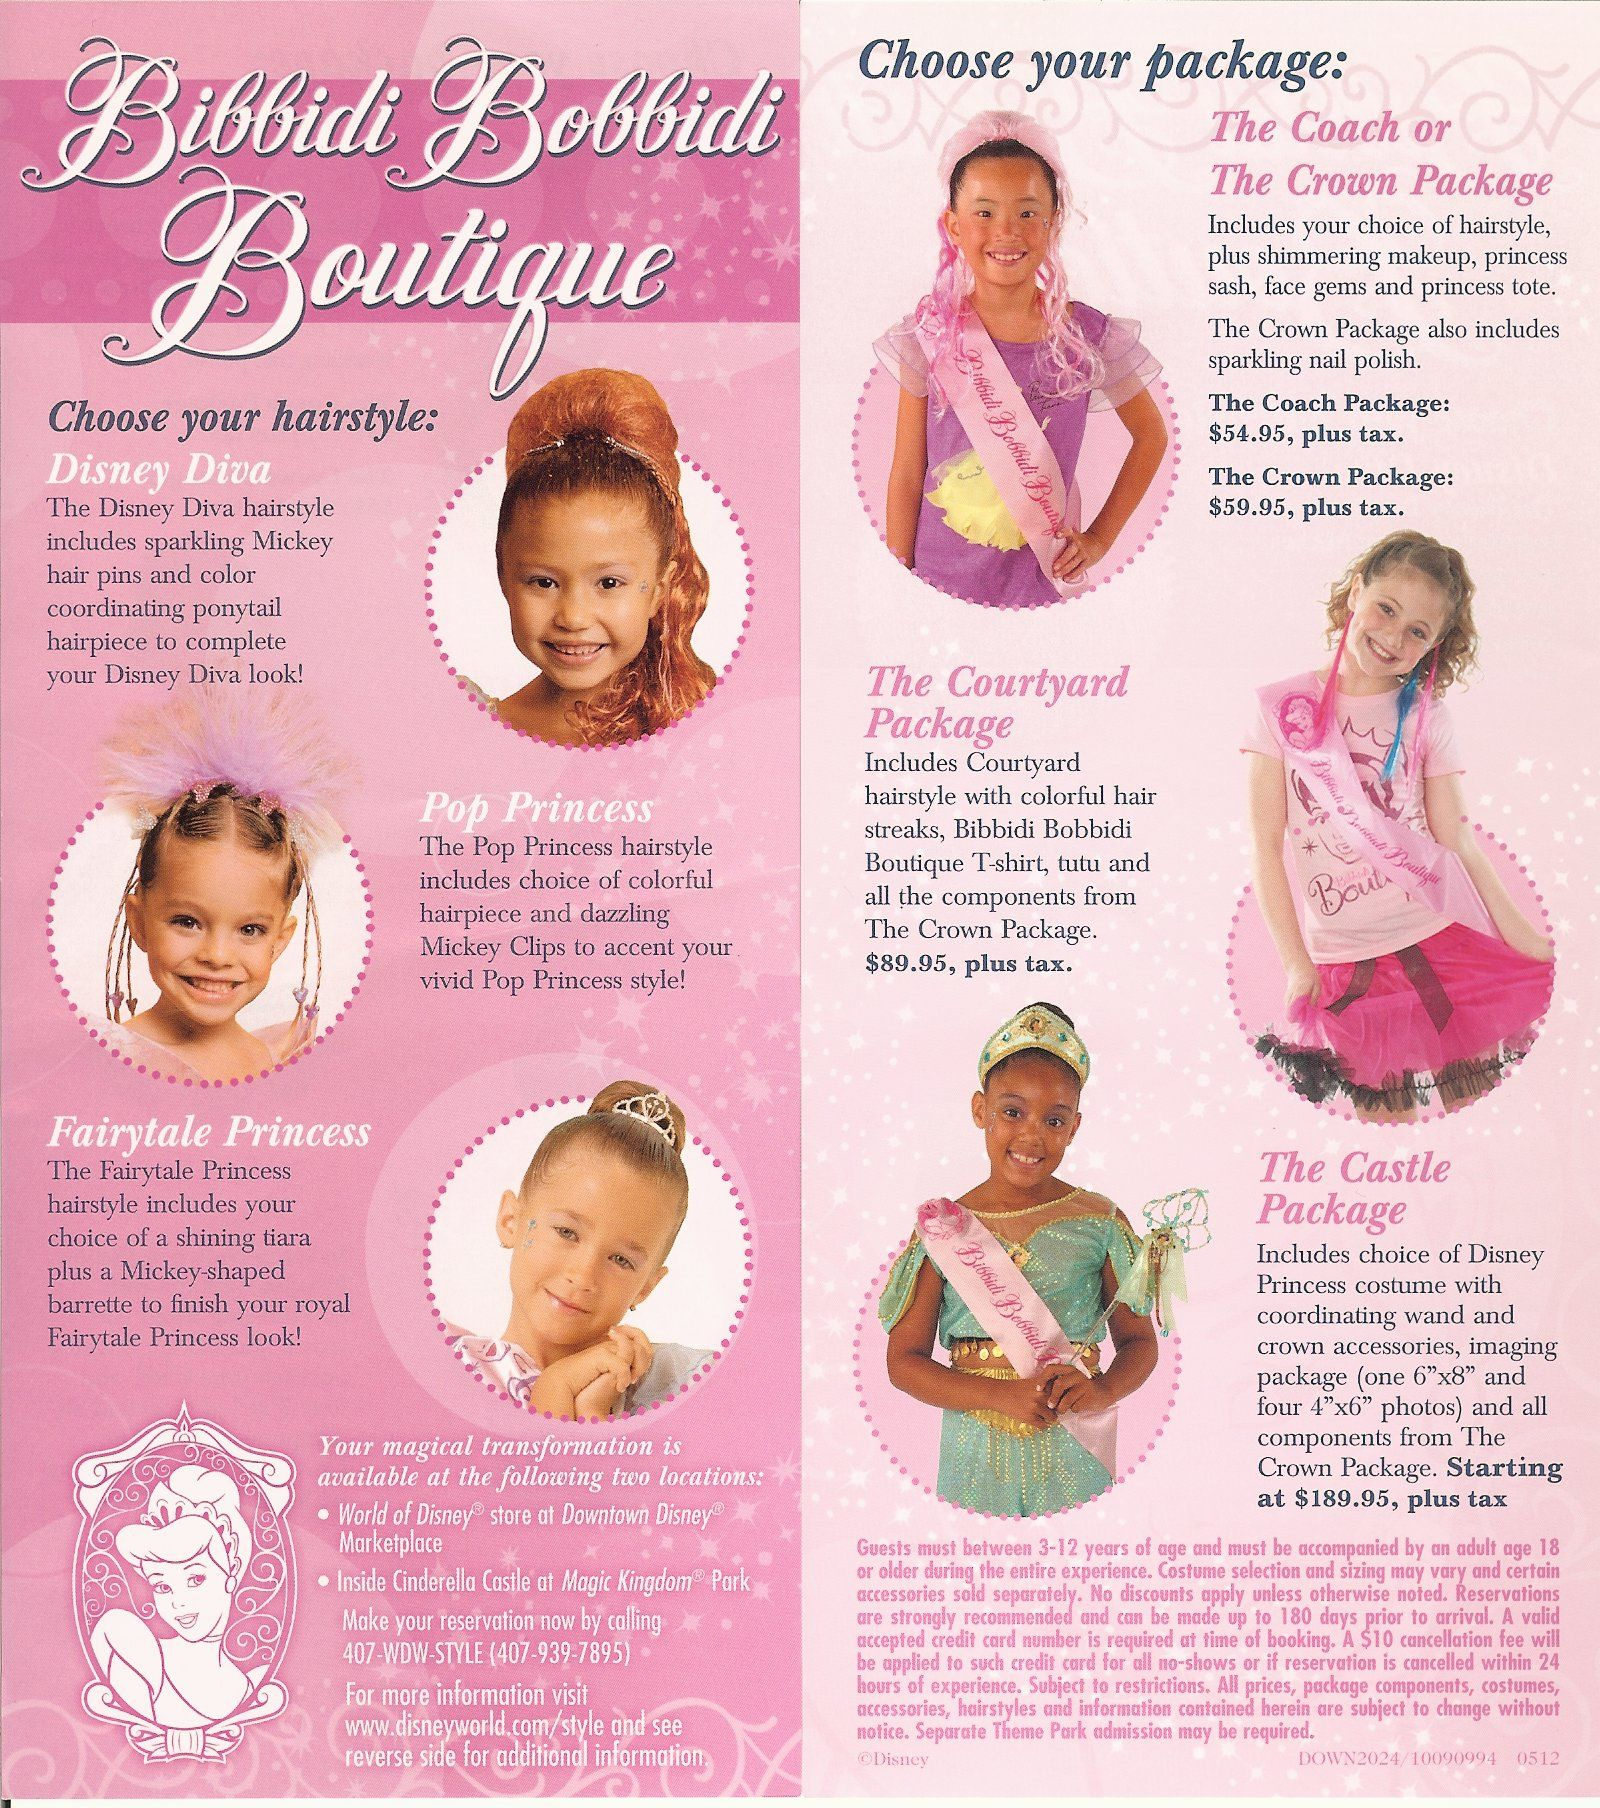 Bibbidi Bobbidi Boutique Brochure There Are Different Packages To Choose From Girls Salon